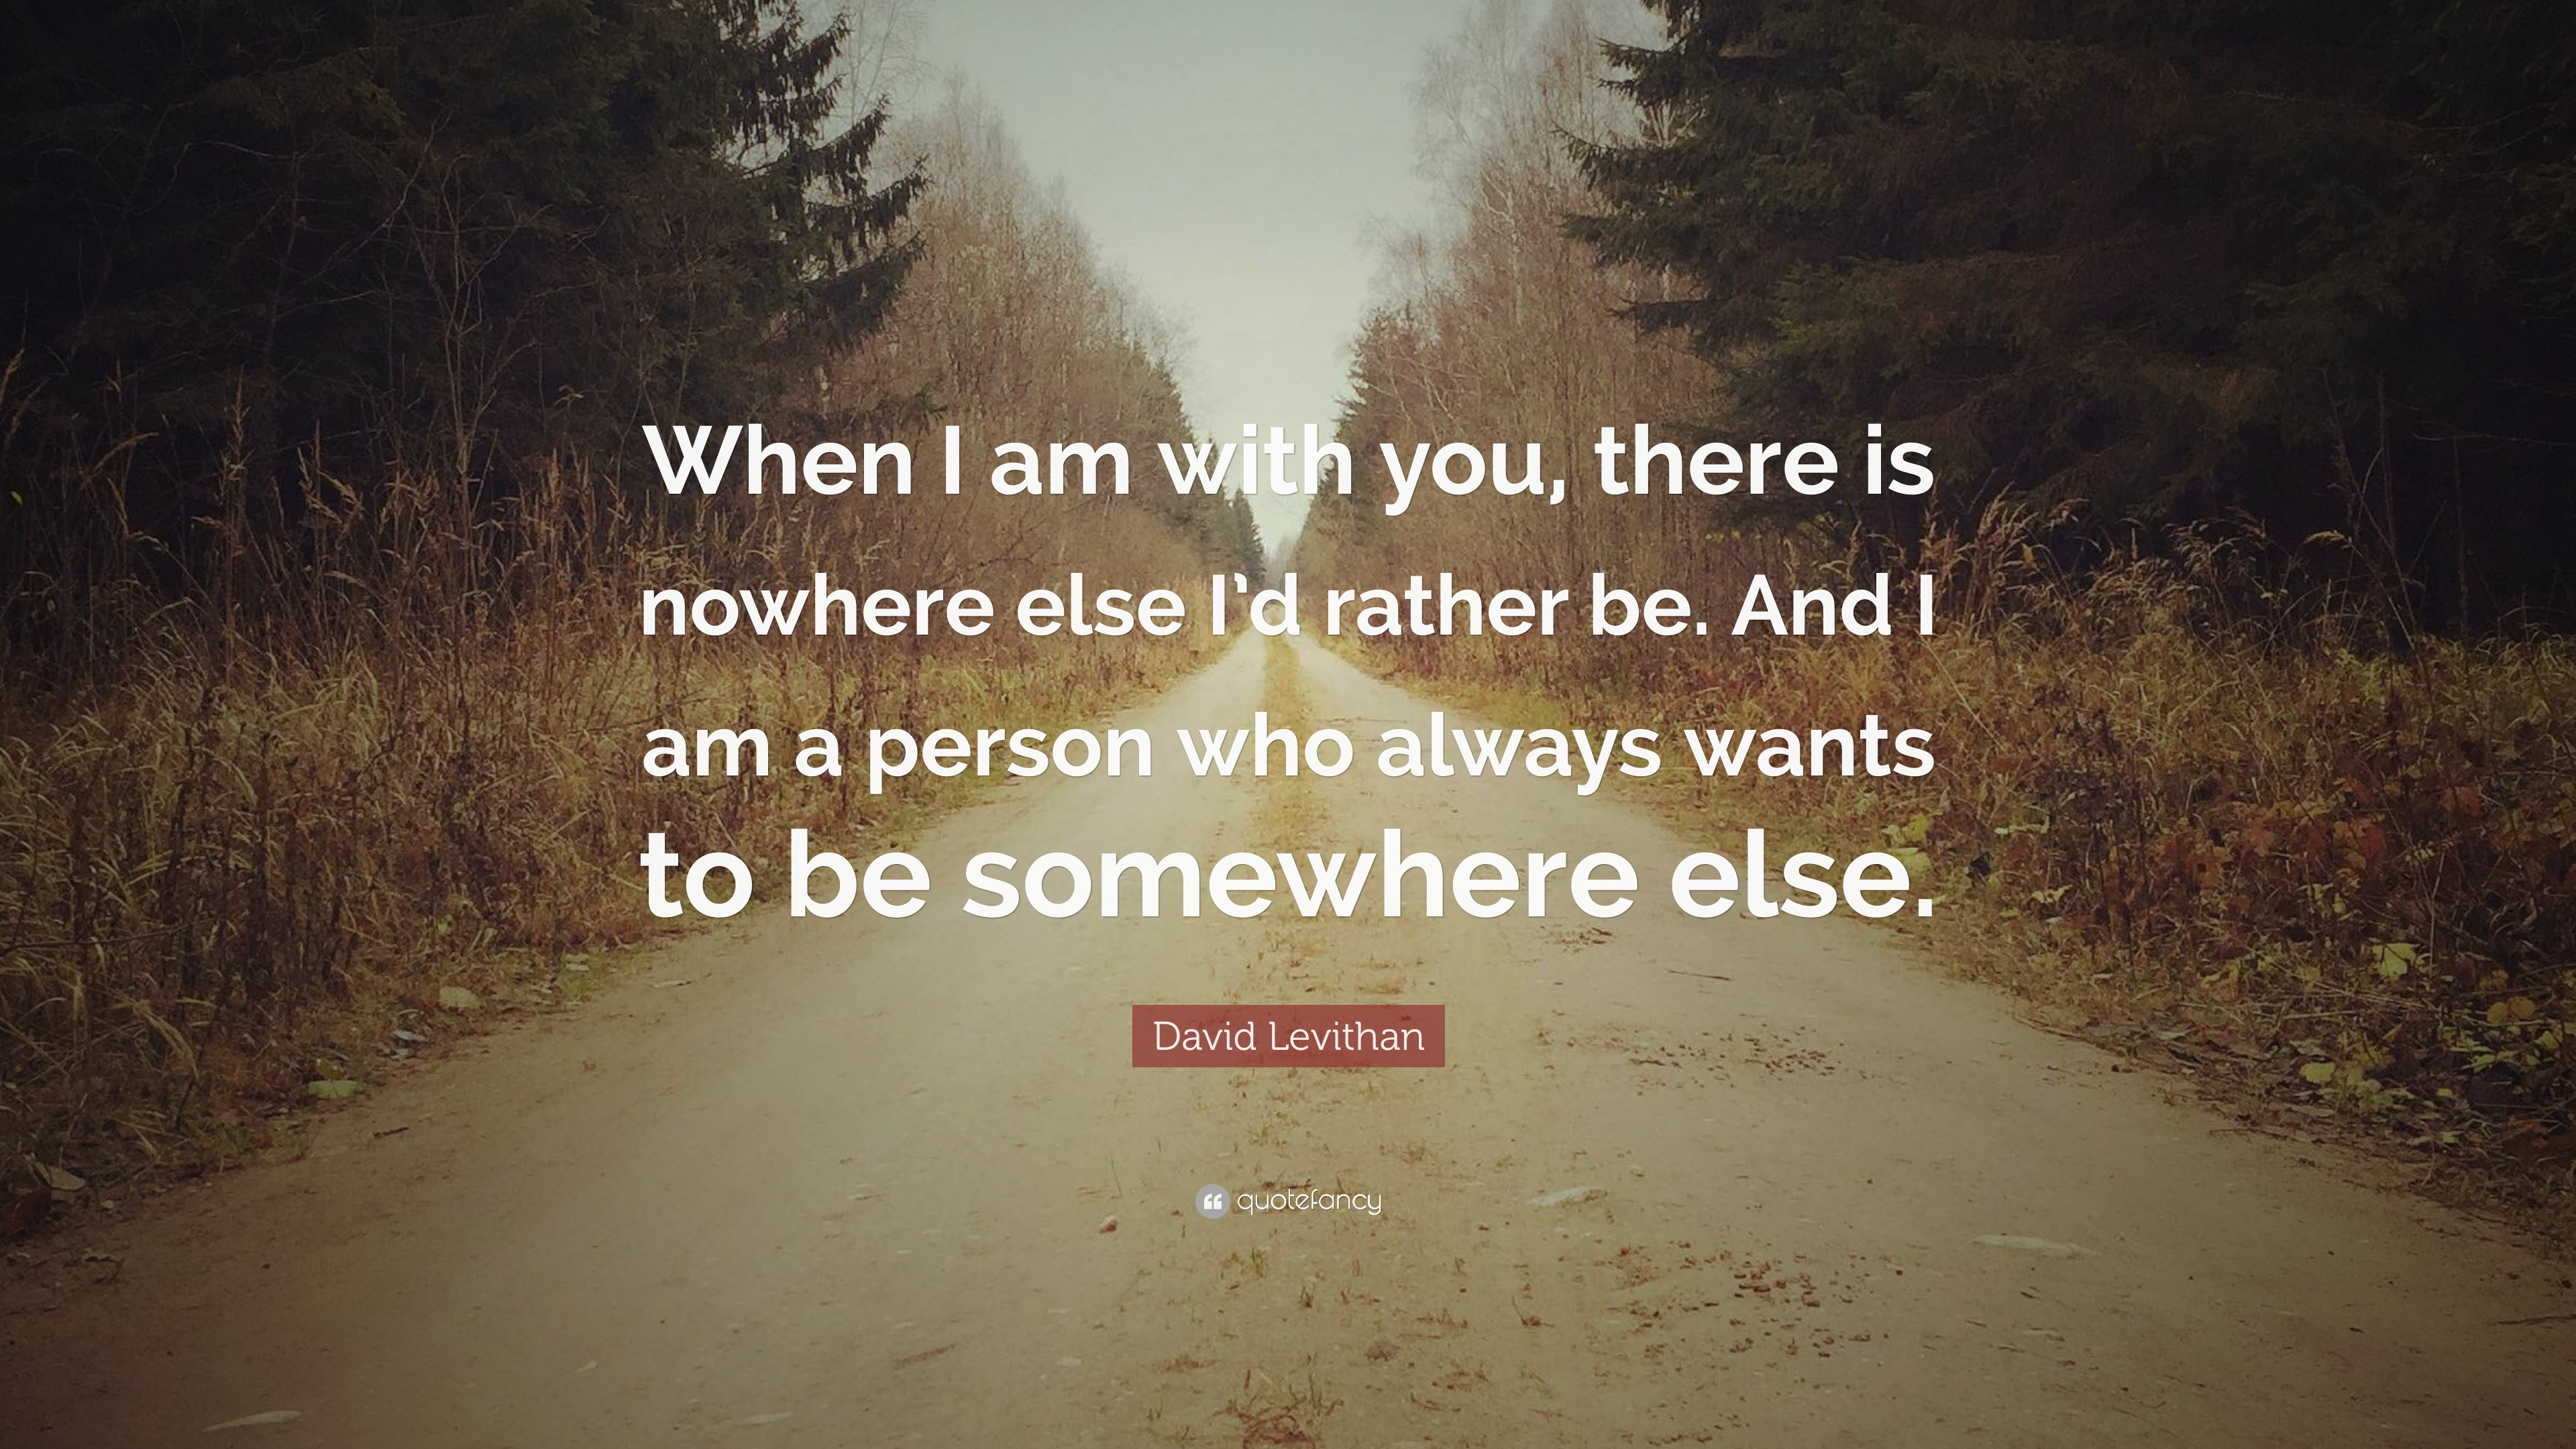 David Levithan Quote When I Am With You There Is Nowhere Else Id